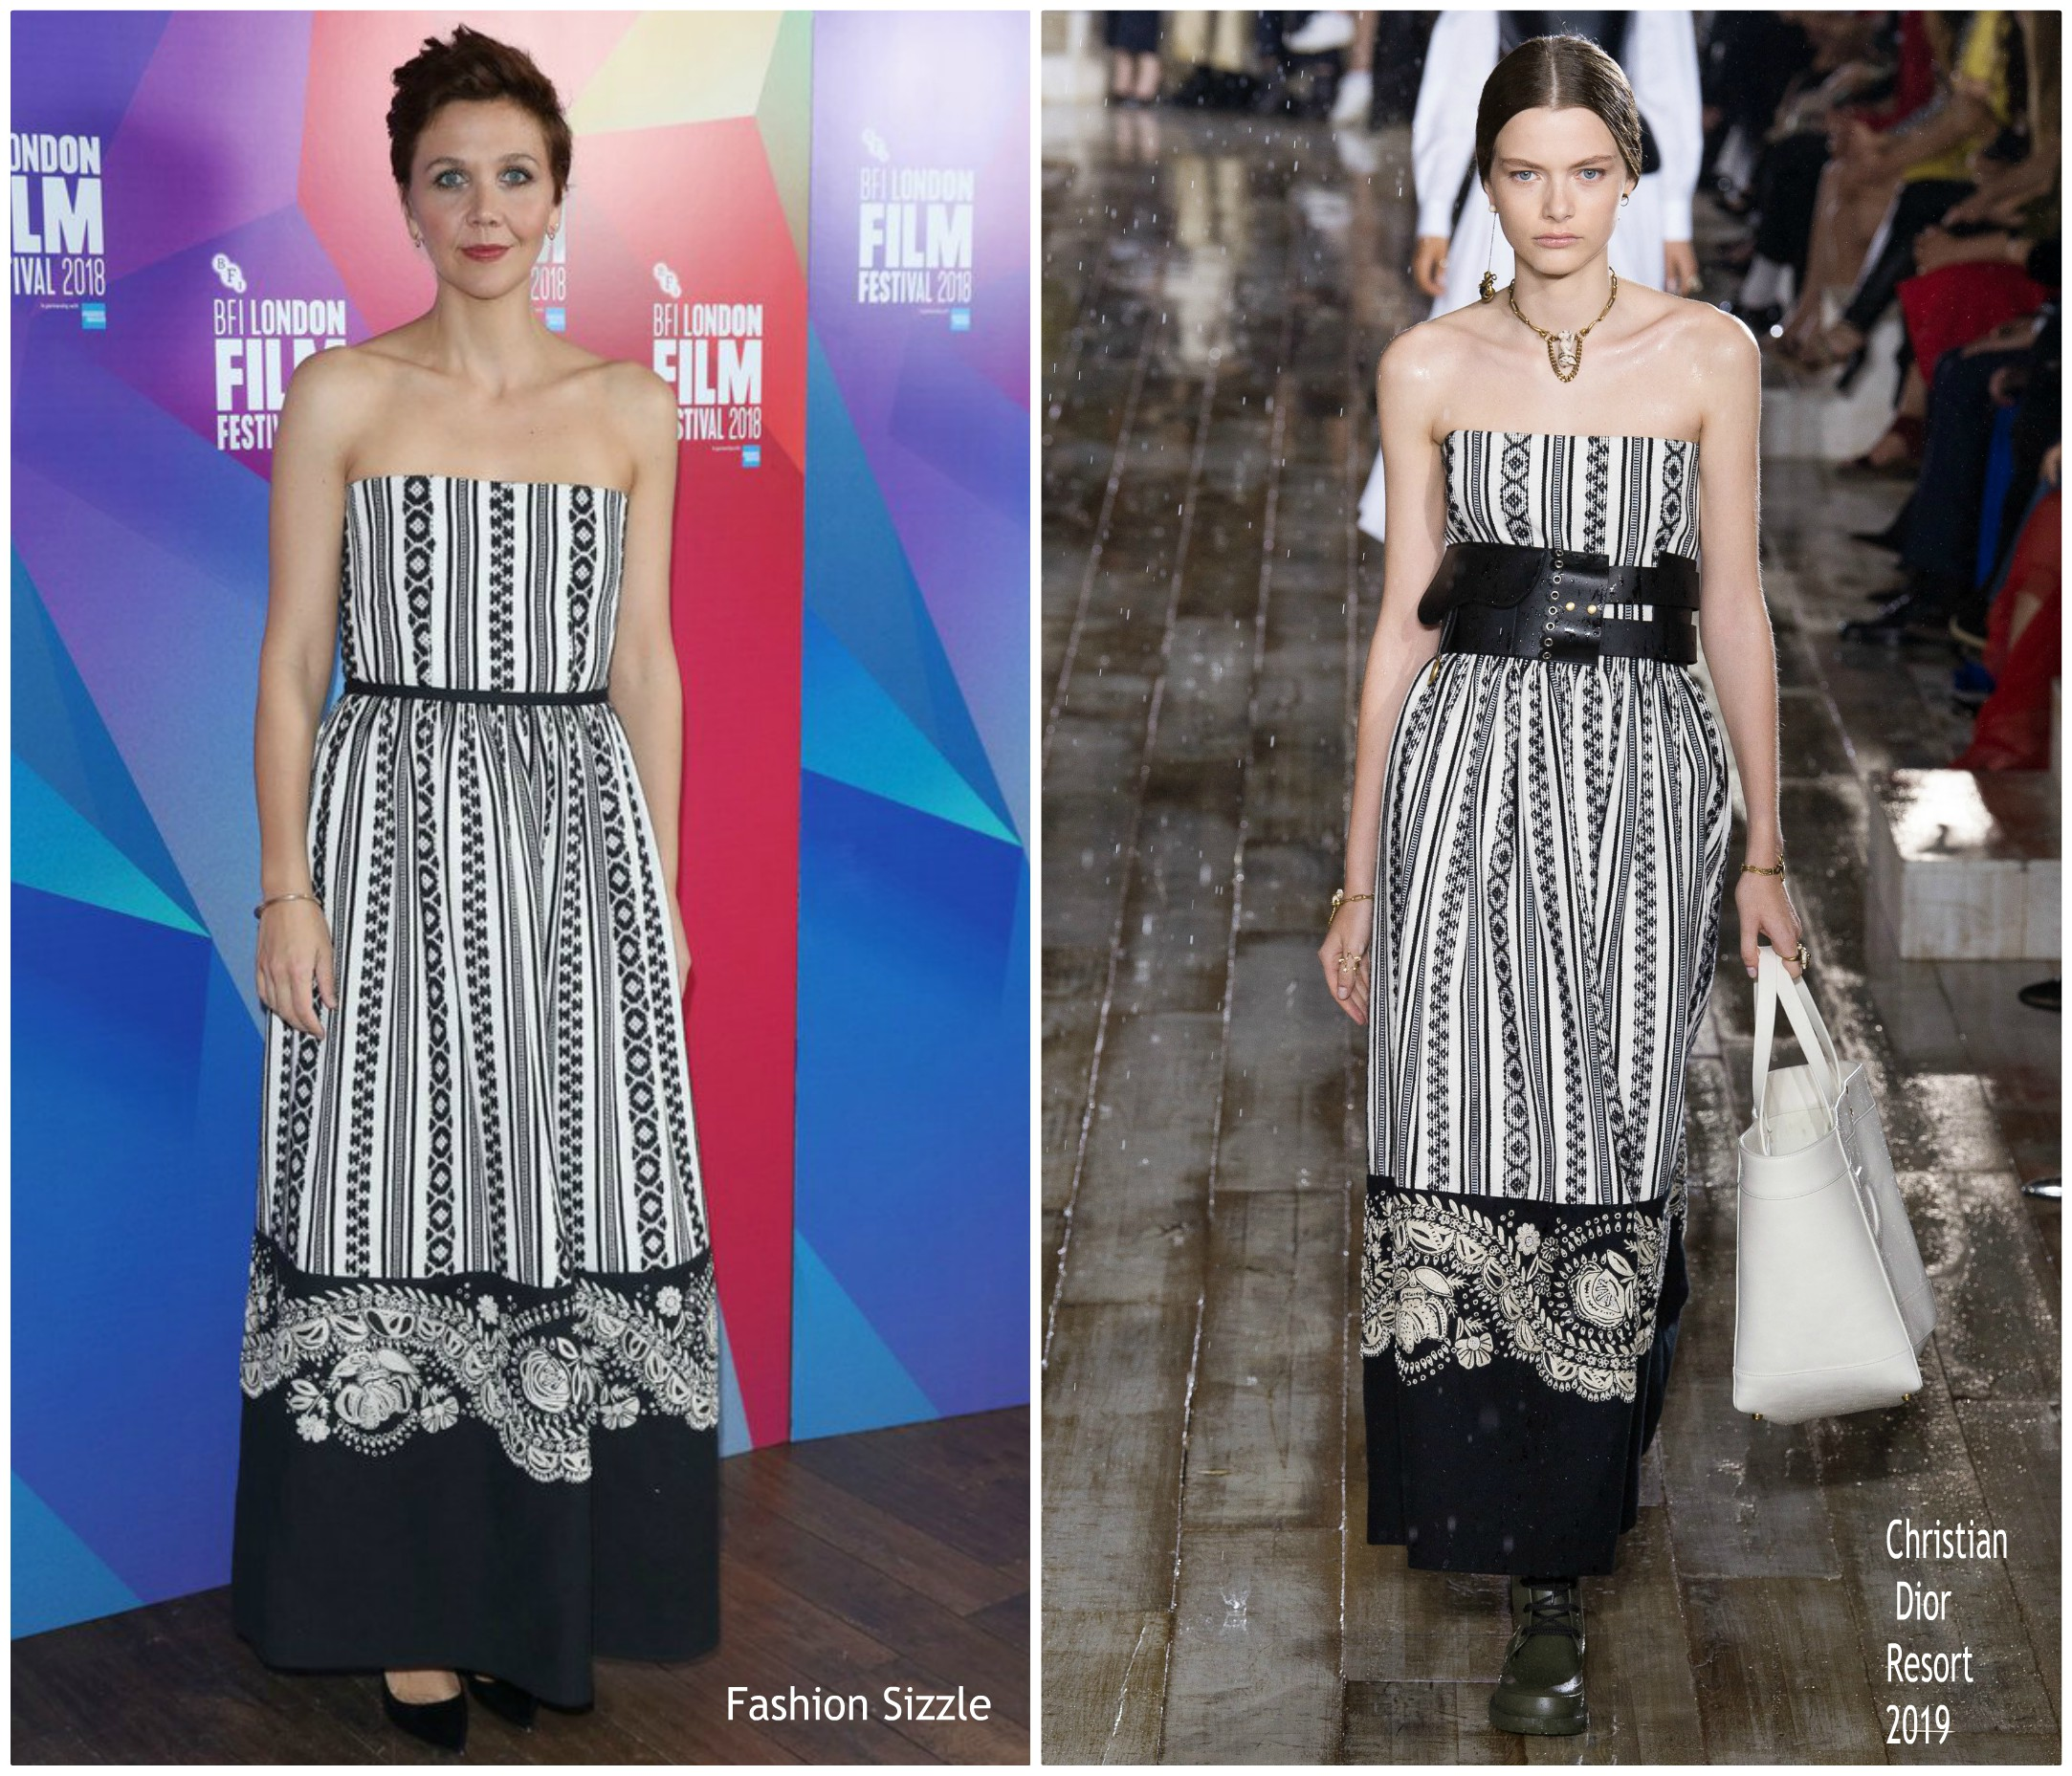 maggie-gyllenhaal-in-dior-the-kindergarten-teacher-london-film-festival-premiere